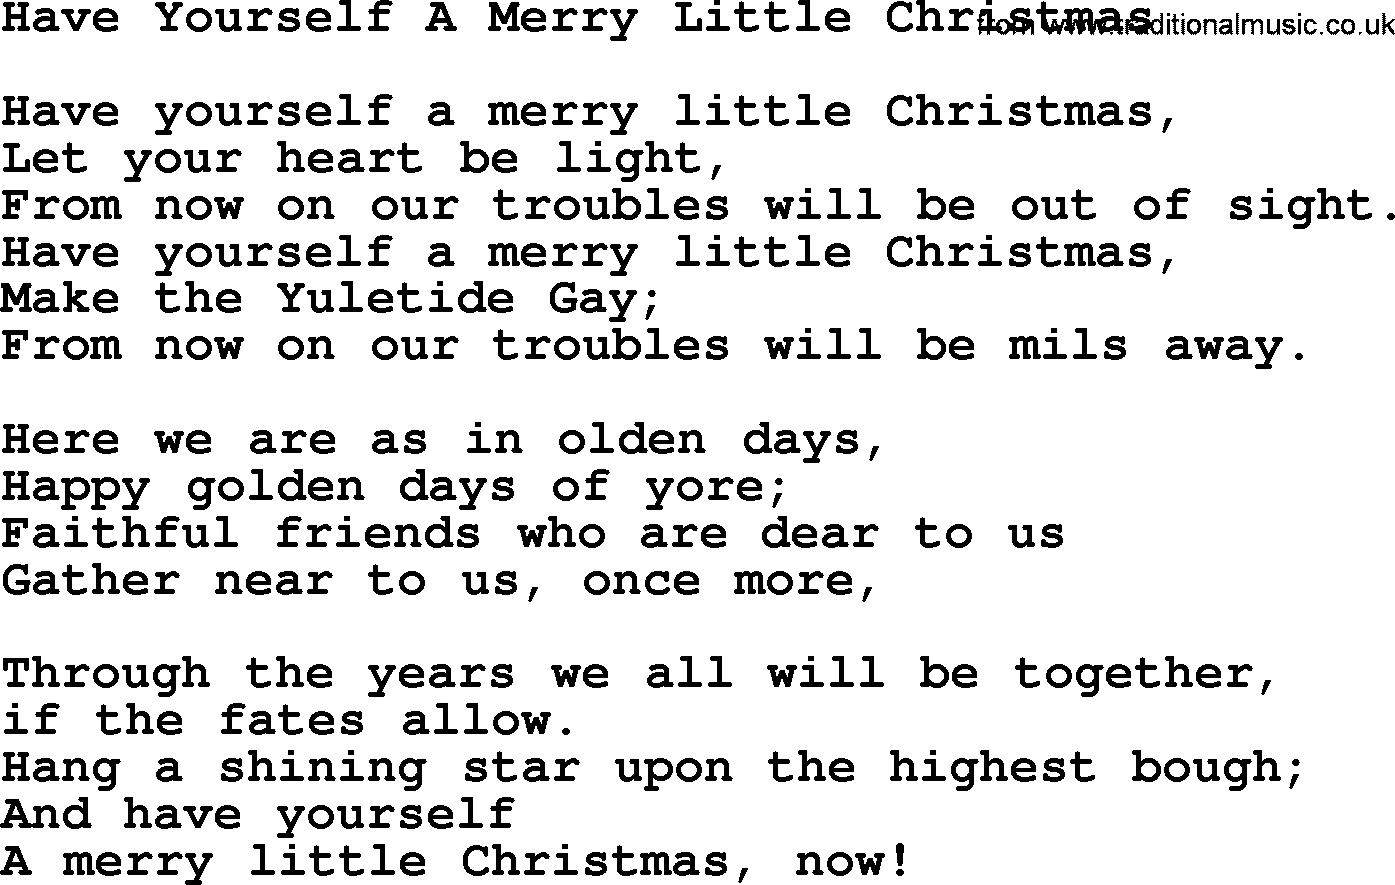 Have Yourself A Merry Christmas Lyrics | Decorating Ideas